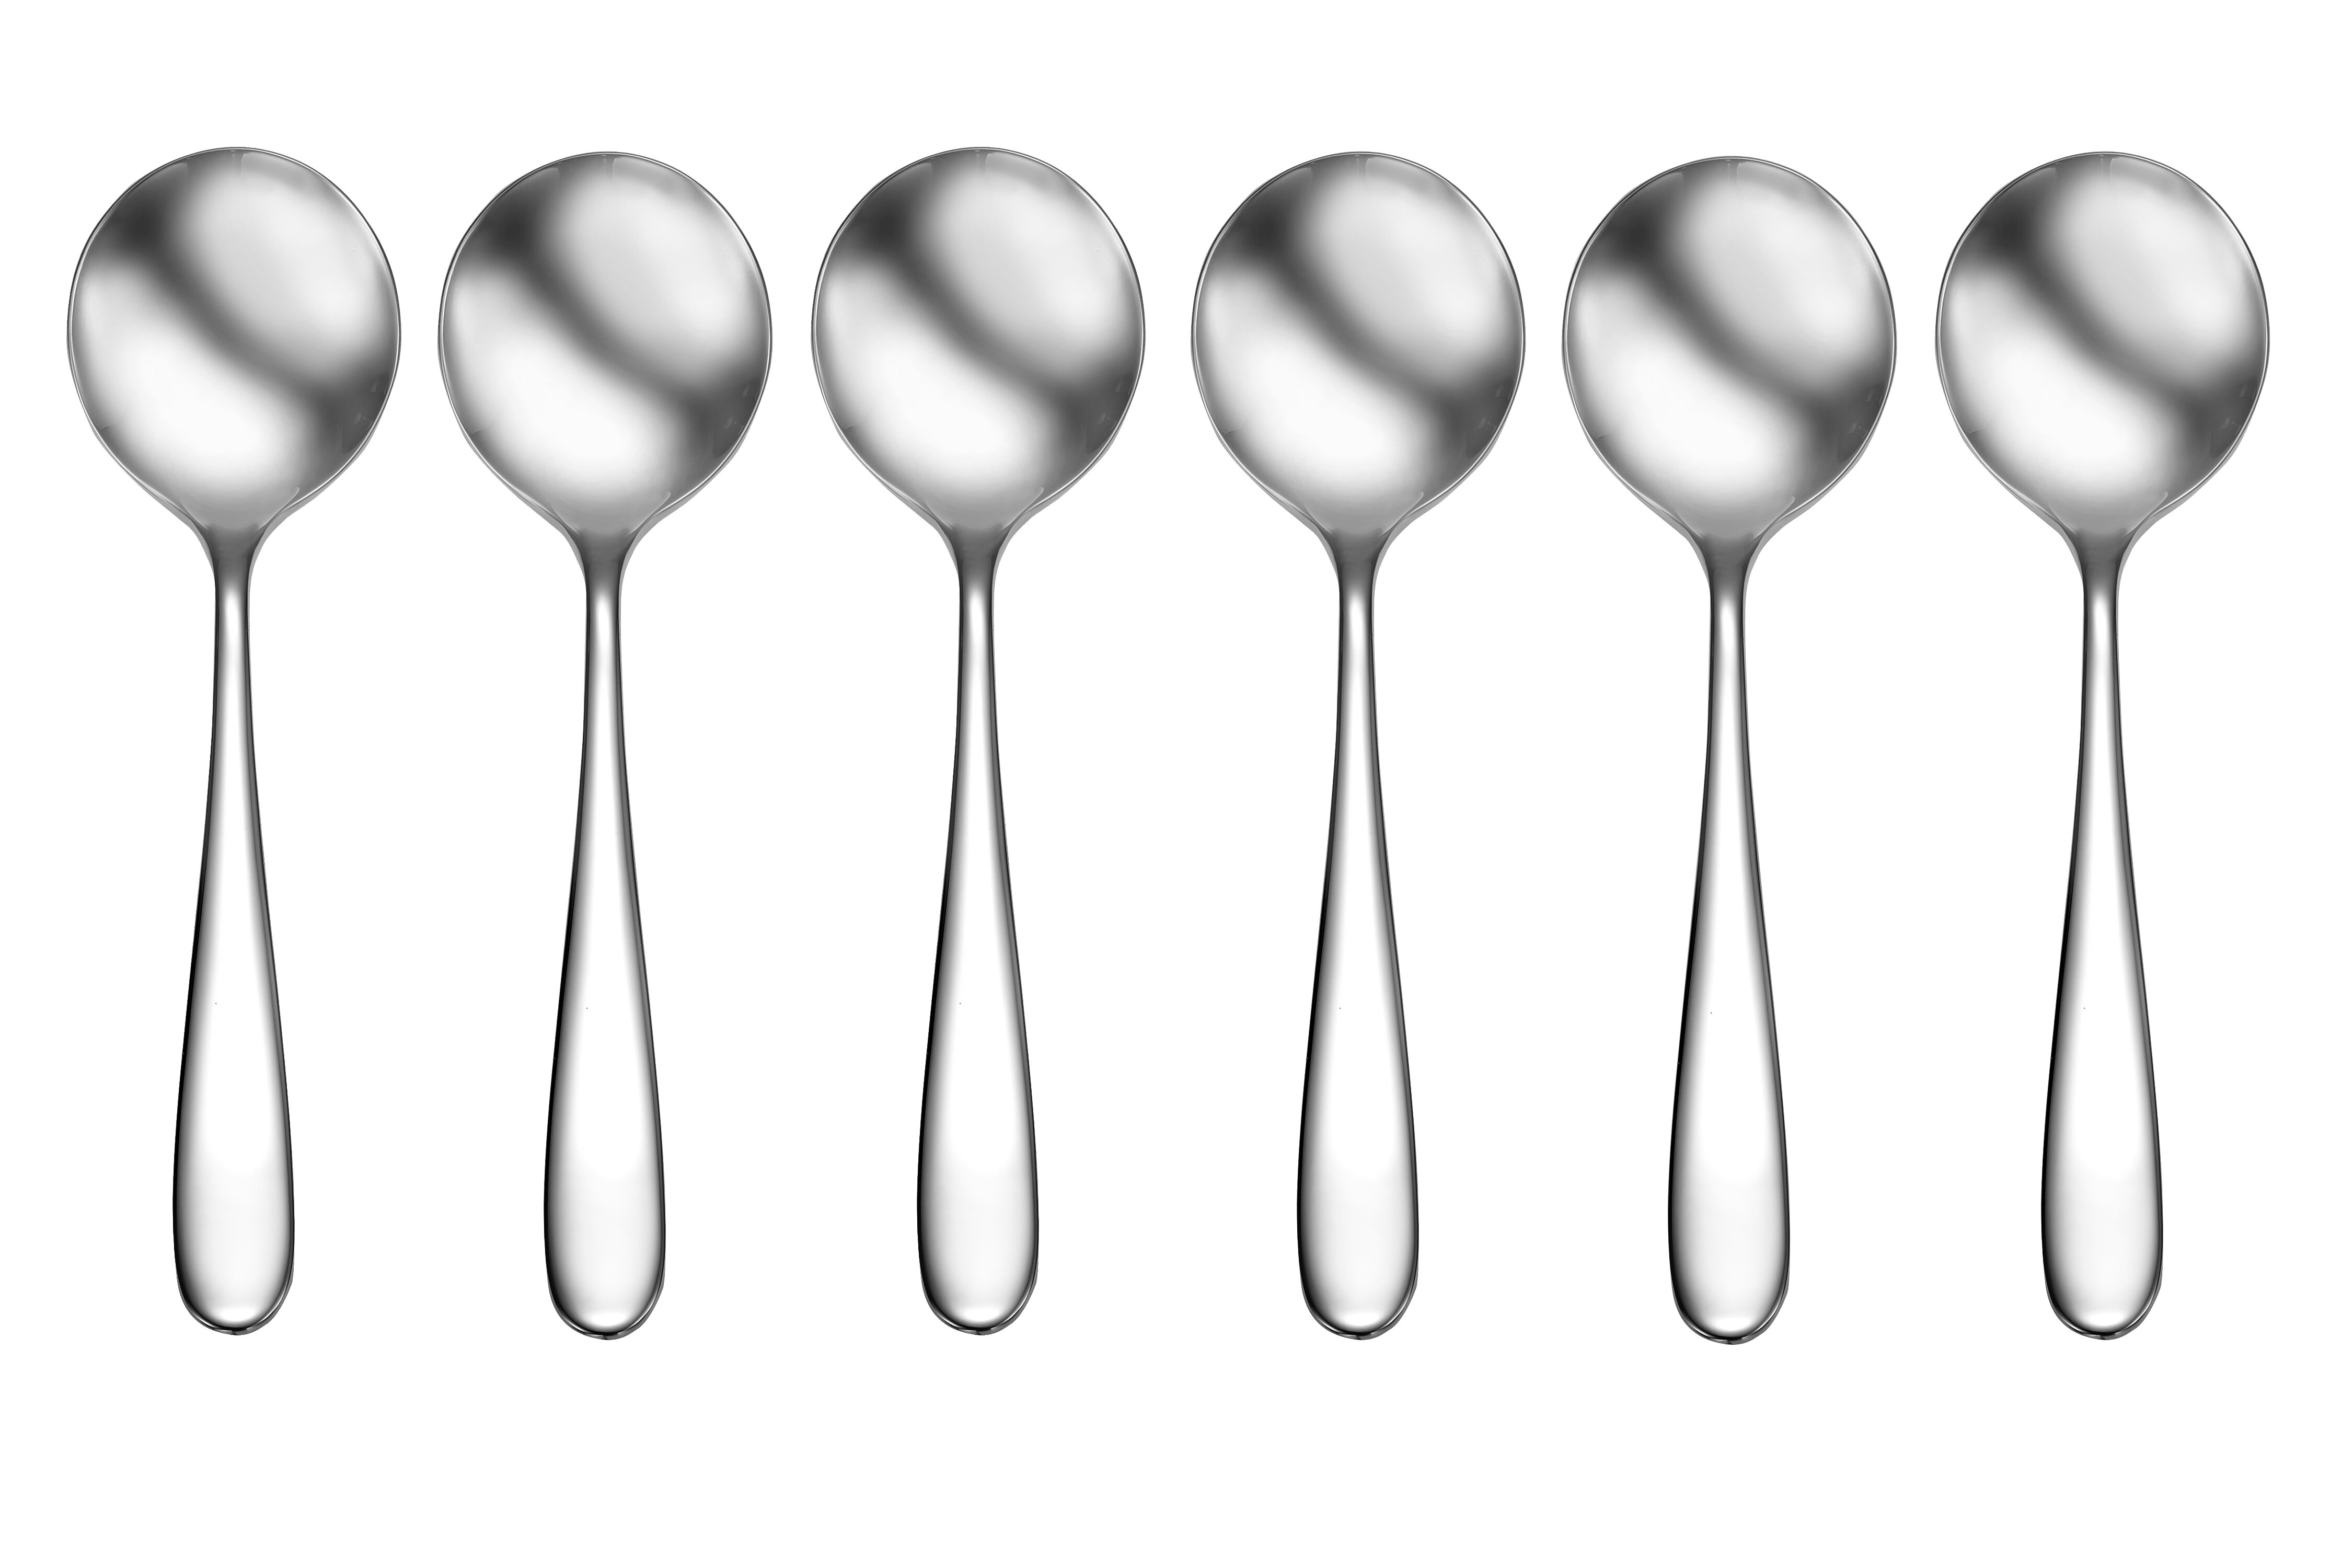 Round Soup Spoons NEW SET OF TWELVE Oneida Stainless ACCENT Bouillon